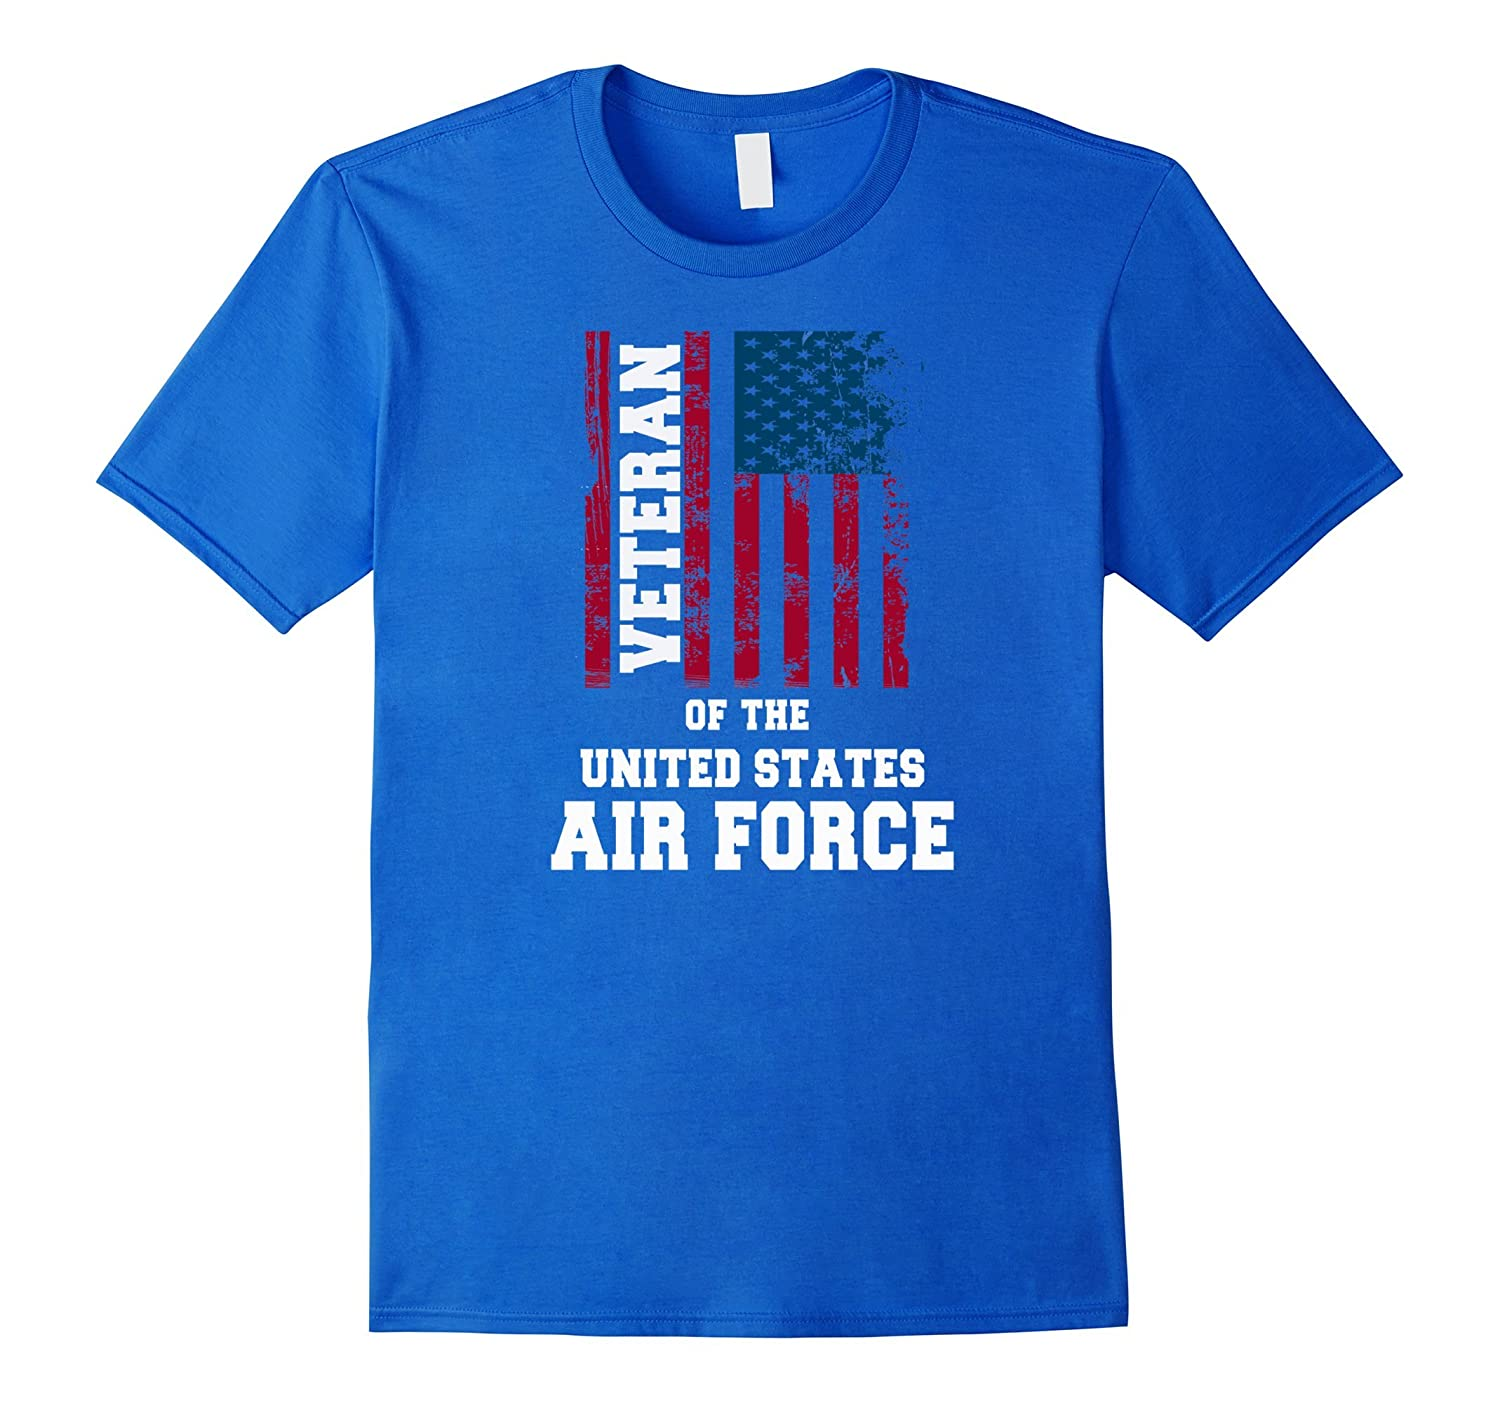 veteran men Military gifts for him - military gifts for women - army gifts for men - tears of my recruits military gifts - veteran gift - john 15:13 - american flag sign.